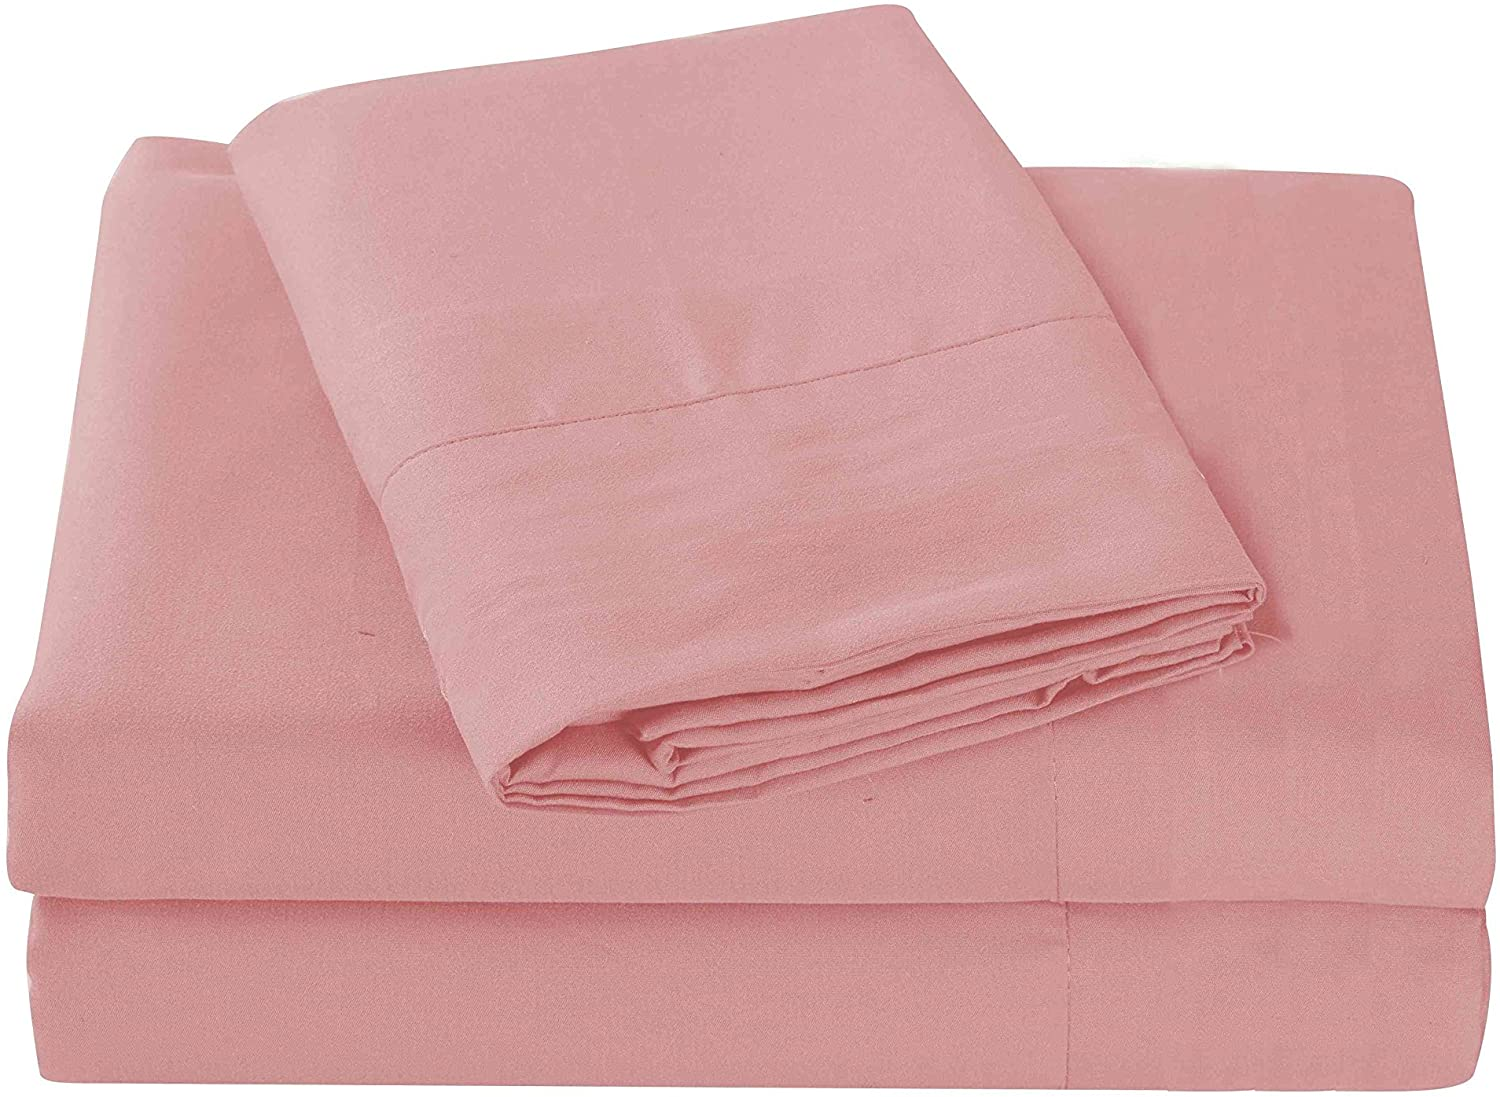 Sheets & Beyond Super Soft 1800 Series Cotton Touch Microfiber 4 Piece Sheet Set - by (Rose, Twin Size)